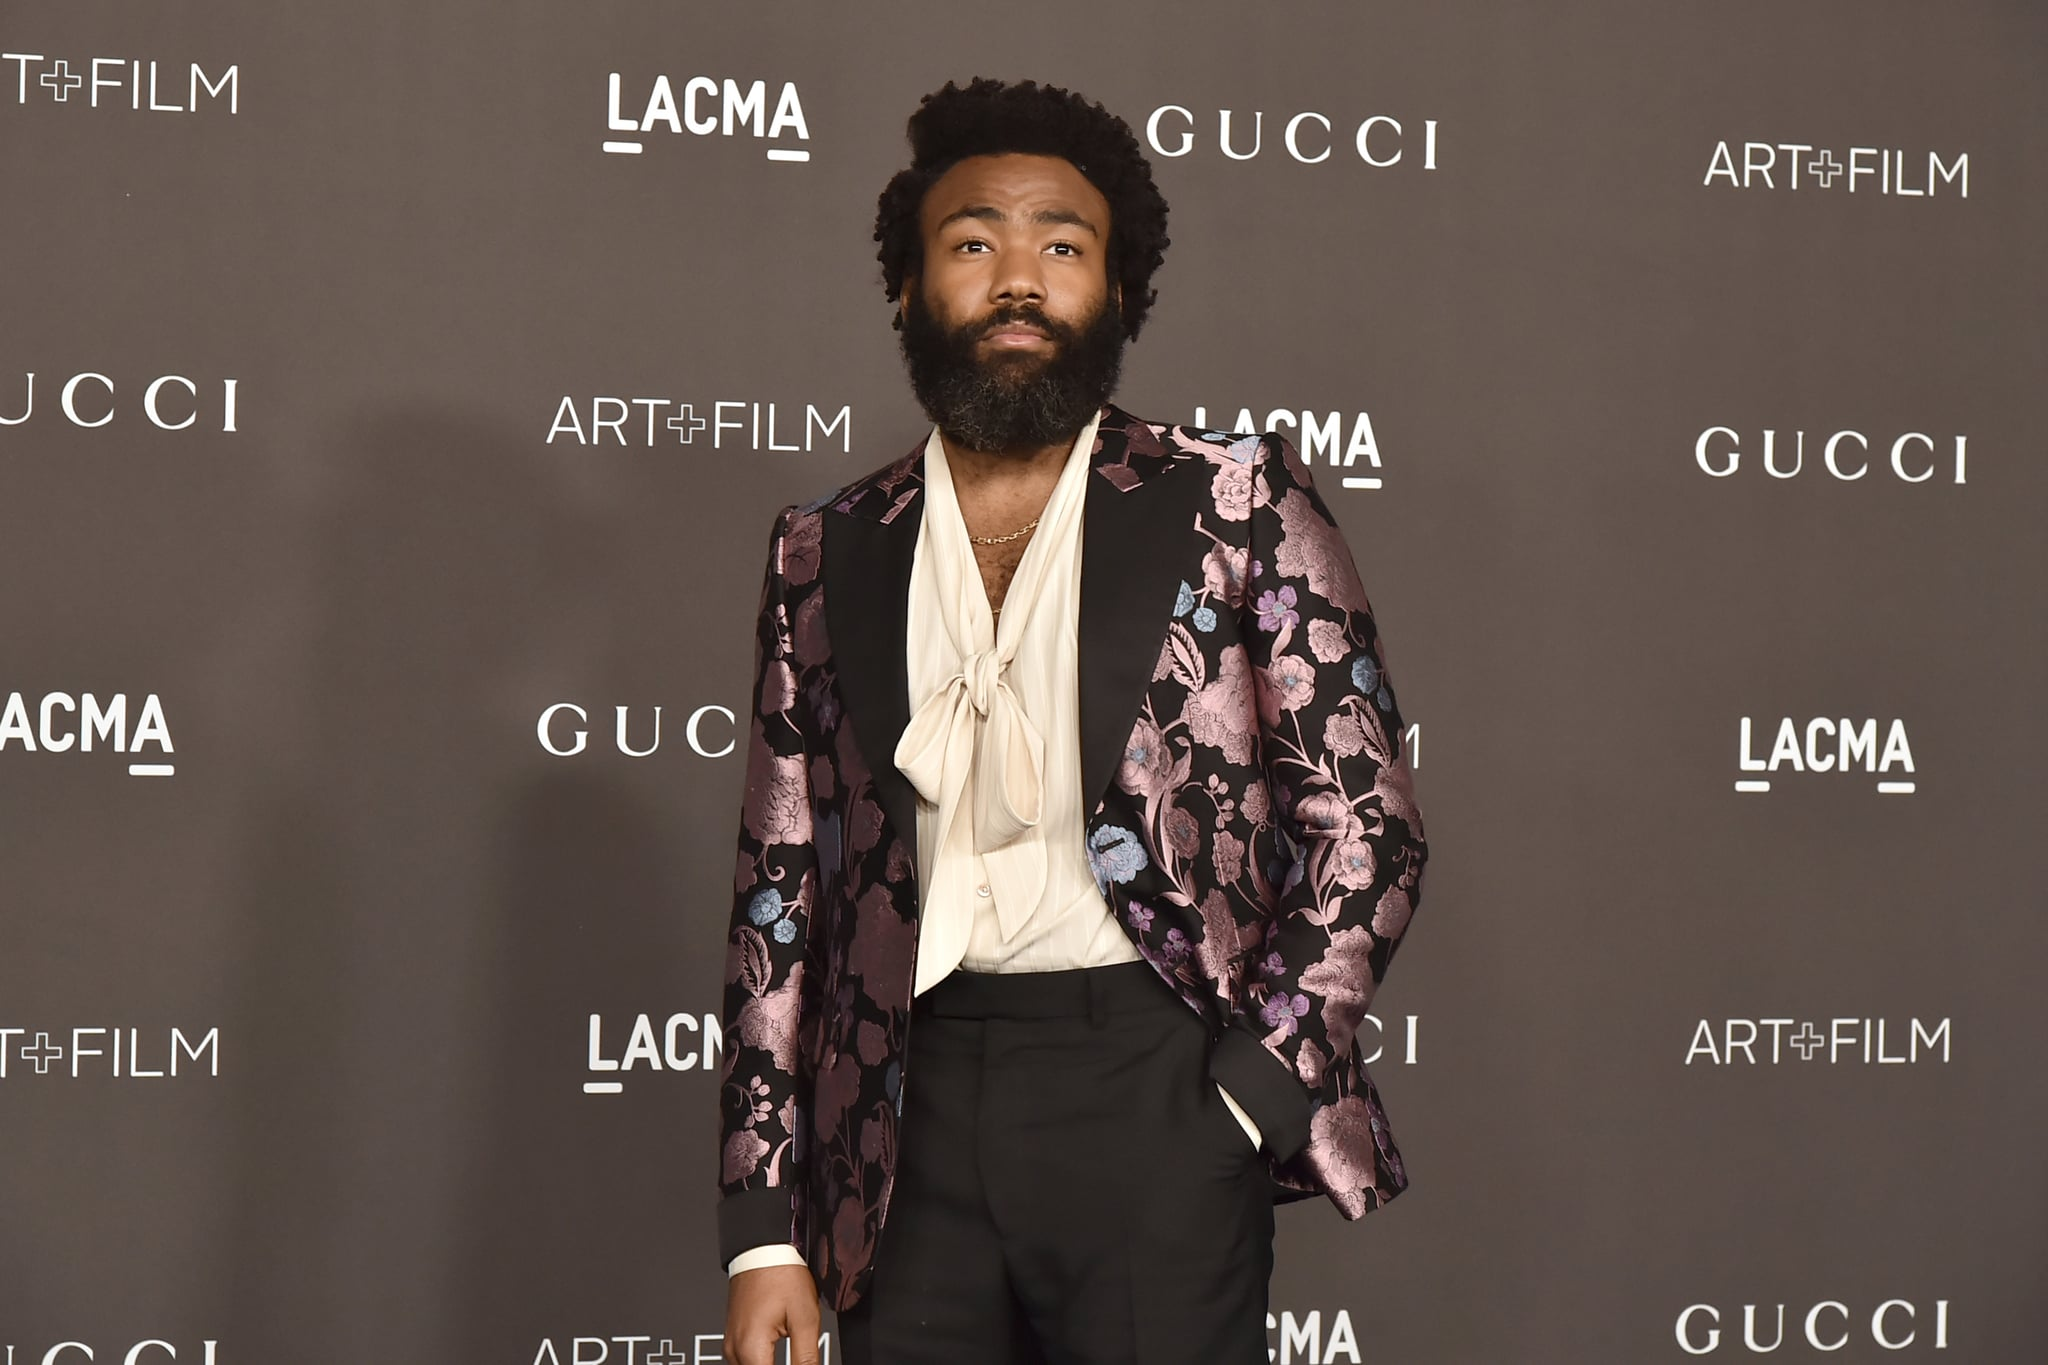 LOS ANGELES, CALIFORNIA - NOVEMBER 02: Donald Glover attends the 2019 LACMA Art + Film Gala  at LACMA on November 02, 2019 in Los Angeles, California. (Photo by David Crotty/Patrick McMullan via Getty Images)